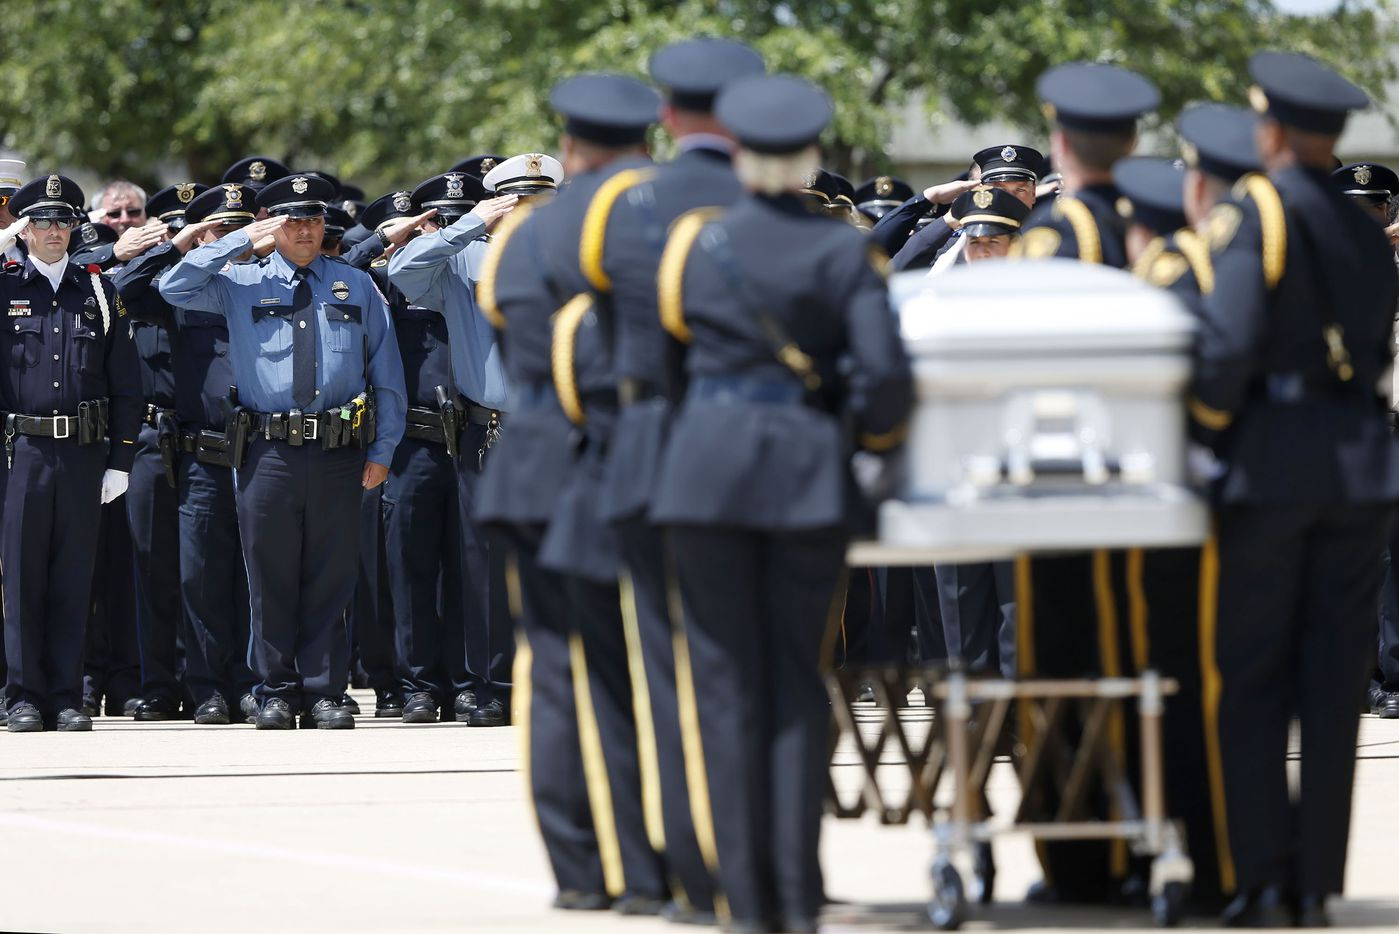 Arlington Honor Guard carry DART Officer Brent Thompson to the hearse during a memorial service at The Potter's House in Dallas on Wednesday, July 13, 2016. Thompson was one of five officers killed last week when a gunman opened fire during a Black Lives Matter rally in downtown Dallas.